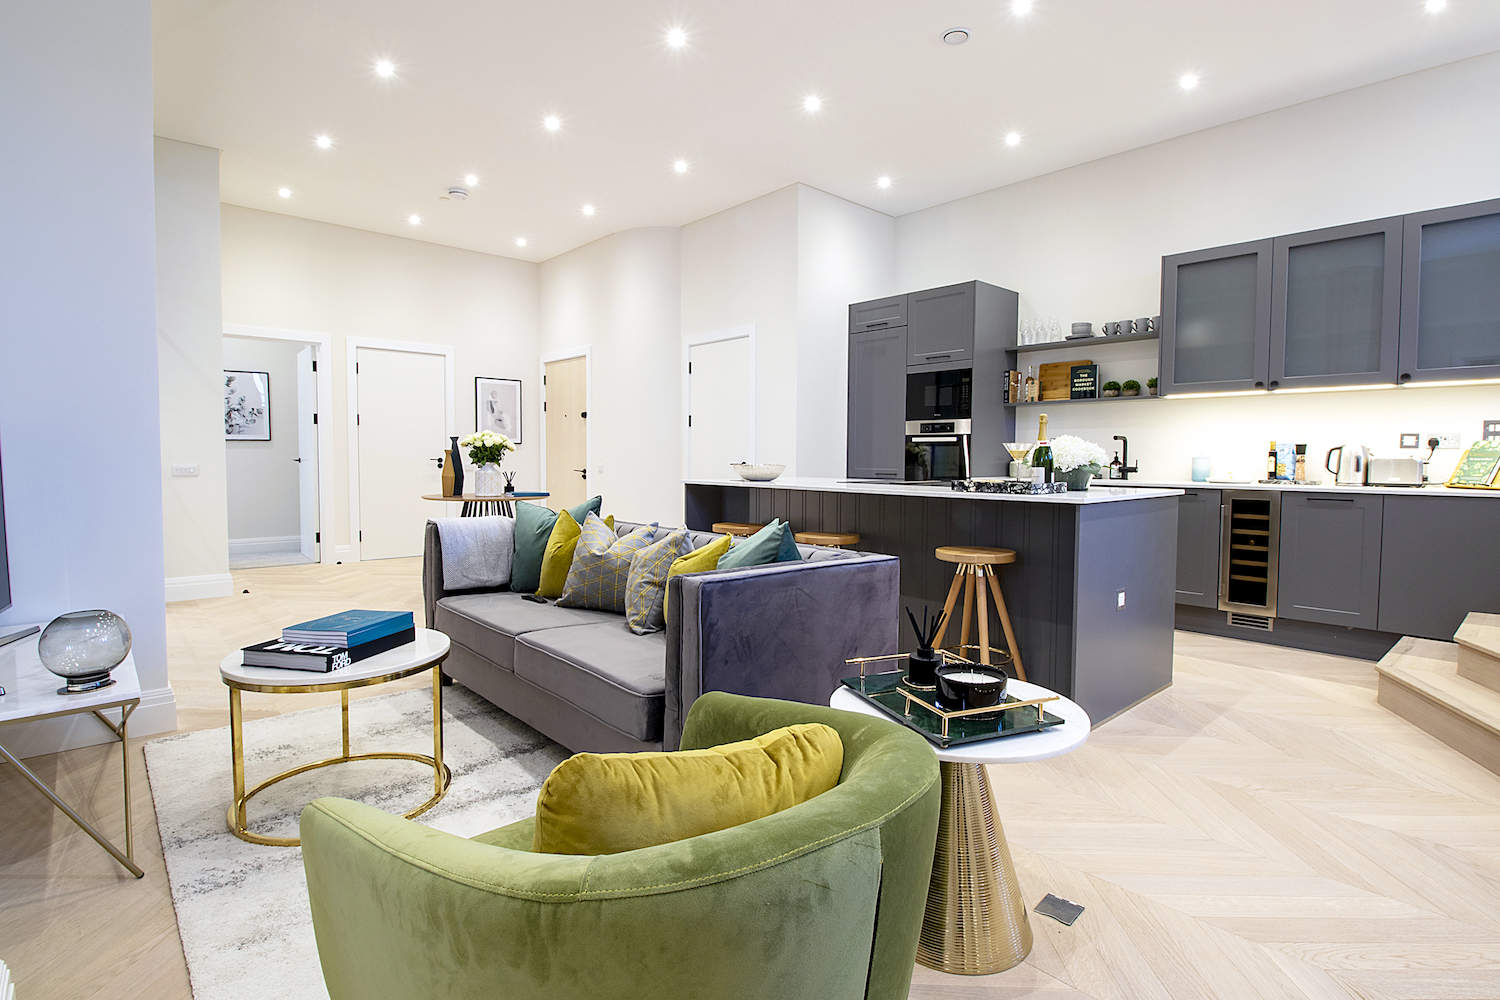 Flat for sale in North London, Finchley - Woodside Park